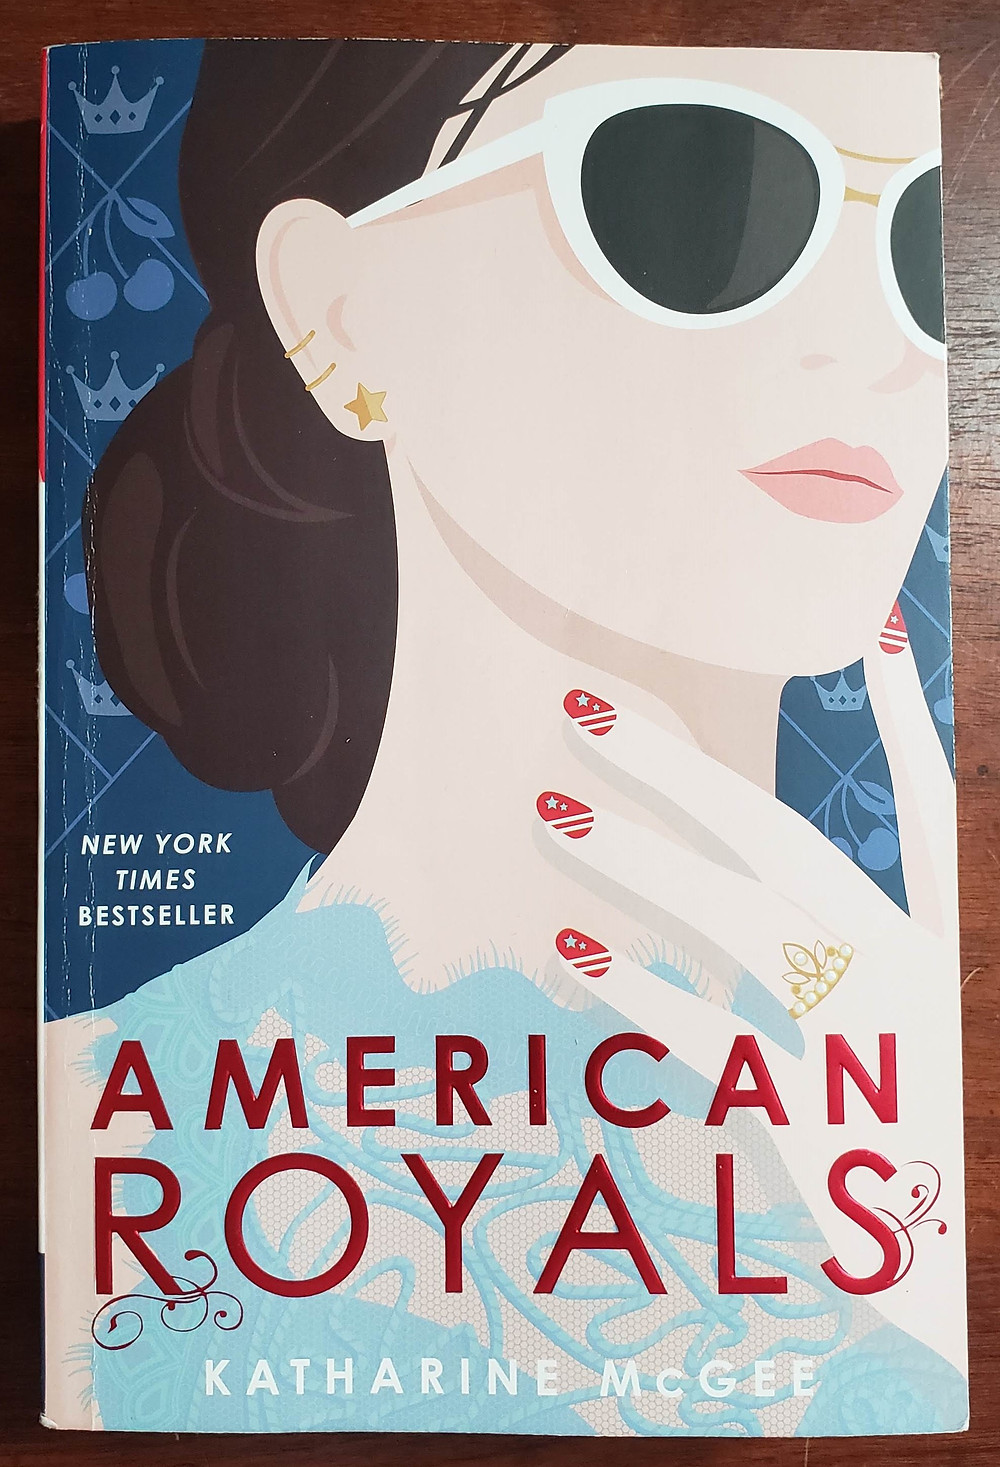 Front image of the book cover for American Royals by Katharine McGee.